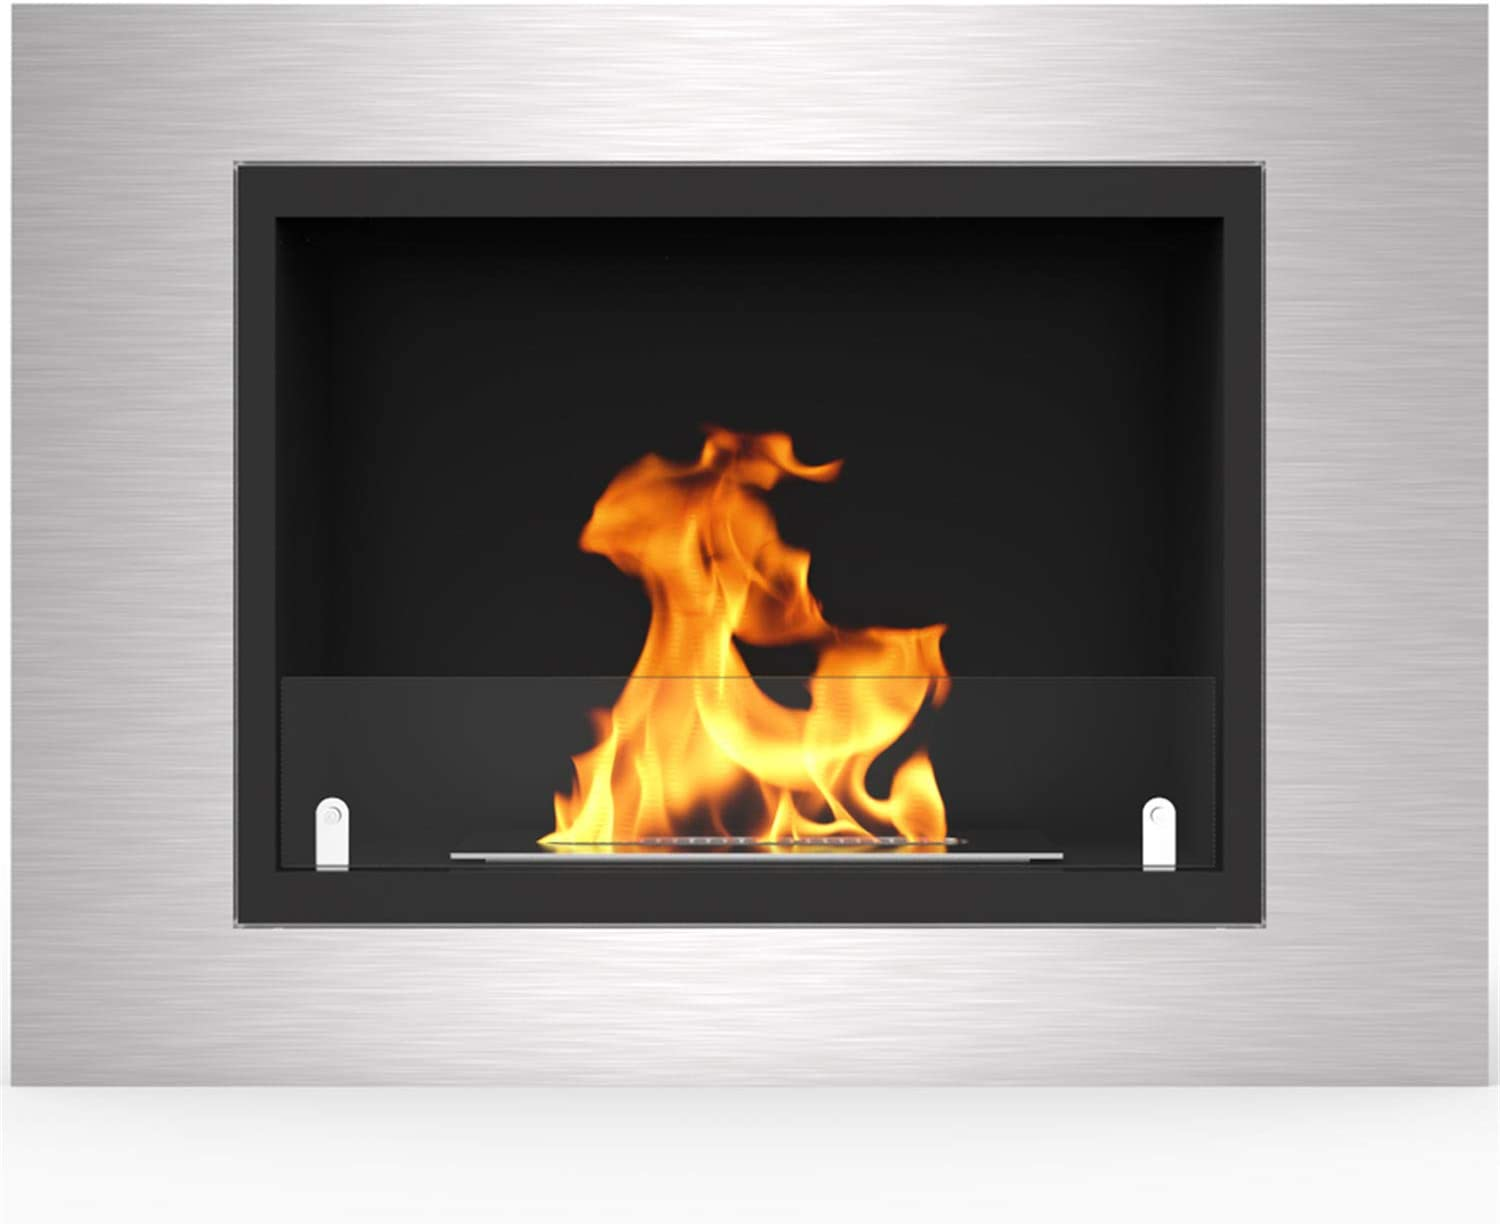 Regal Flame Tucson Mall Venice 32 Inch Ventless Max 77% OFF in Bio Built Recessed Ethano